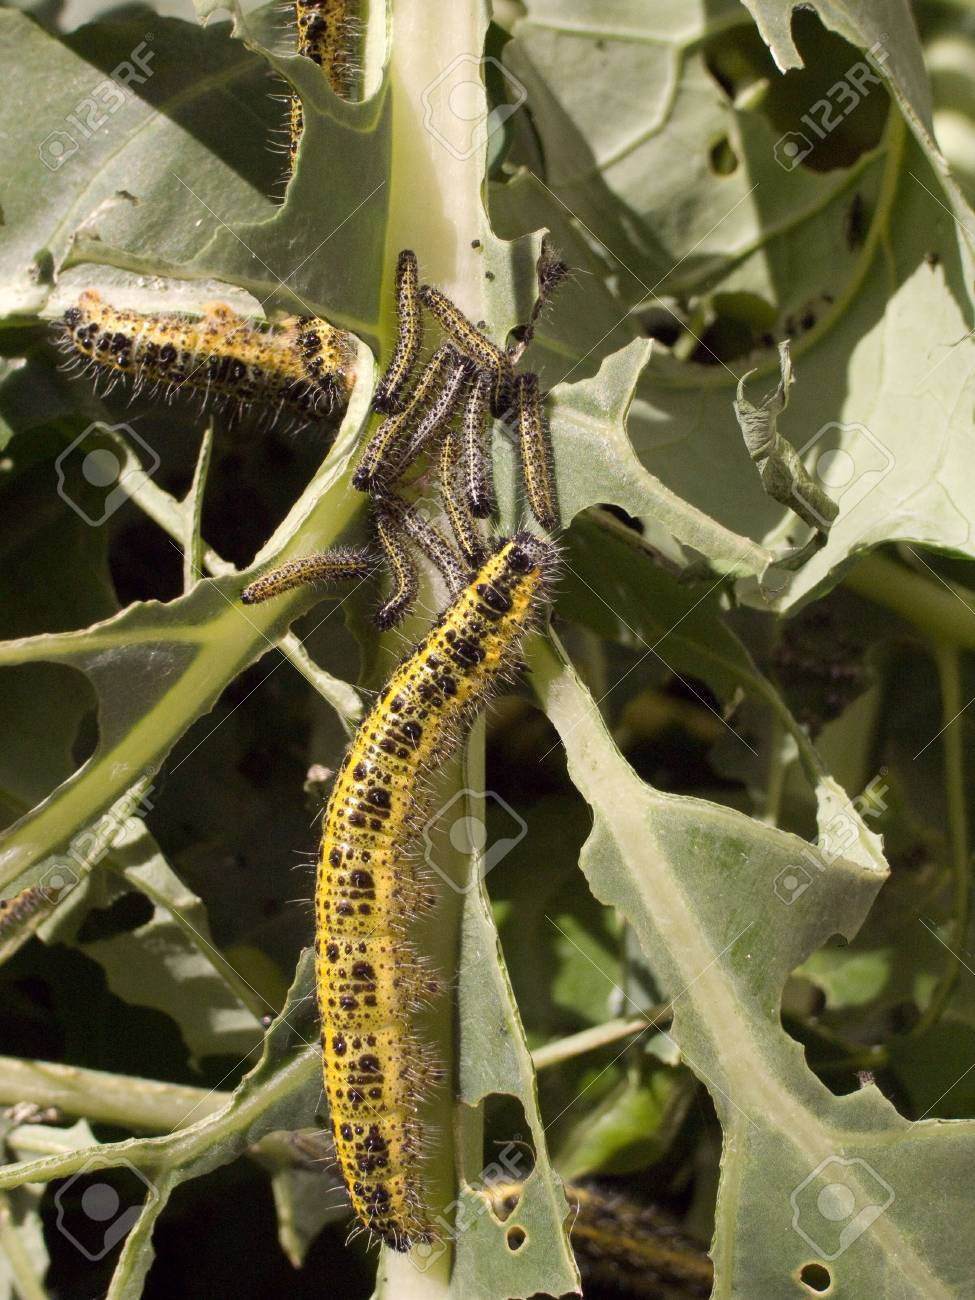 Caterpillars of the large white butterfly destroy brassica crop. Stock Photo - 5500206